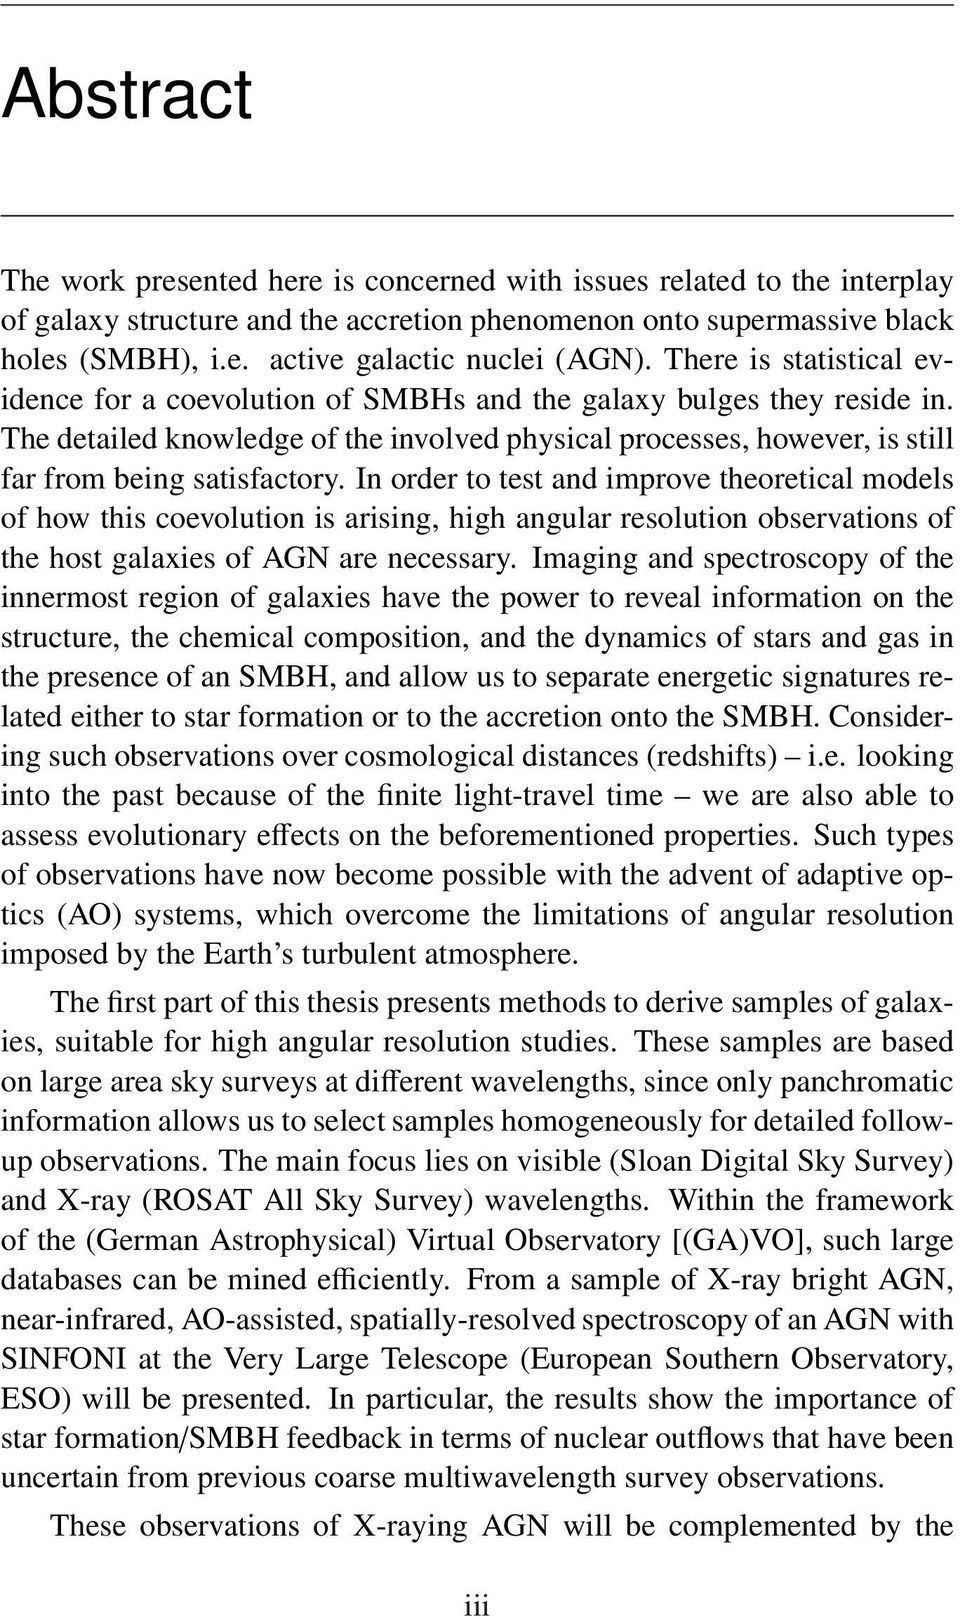 In order to test and improve theoretical models of how this coevolution is arising, high angular resolution observations of the host galaxies of AGN are necessary.